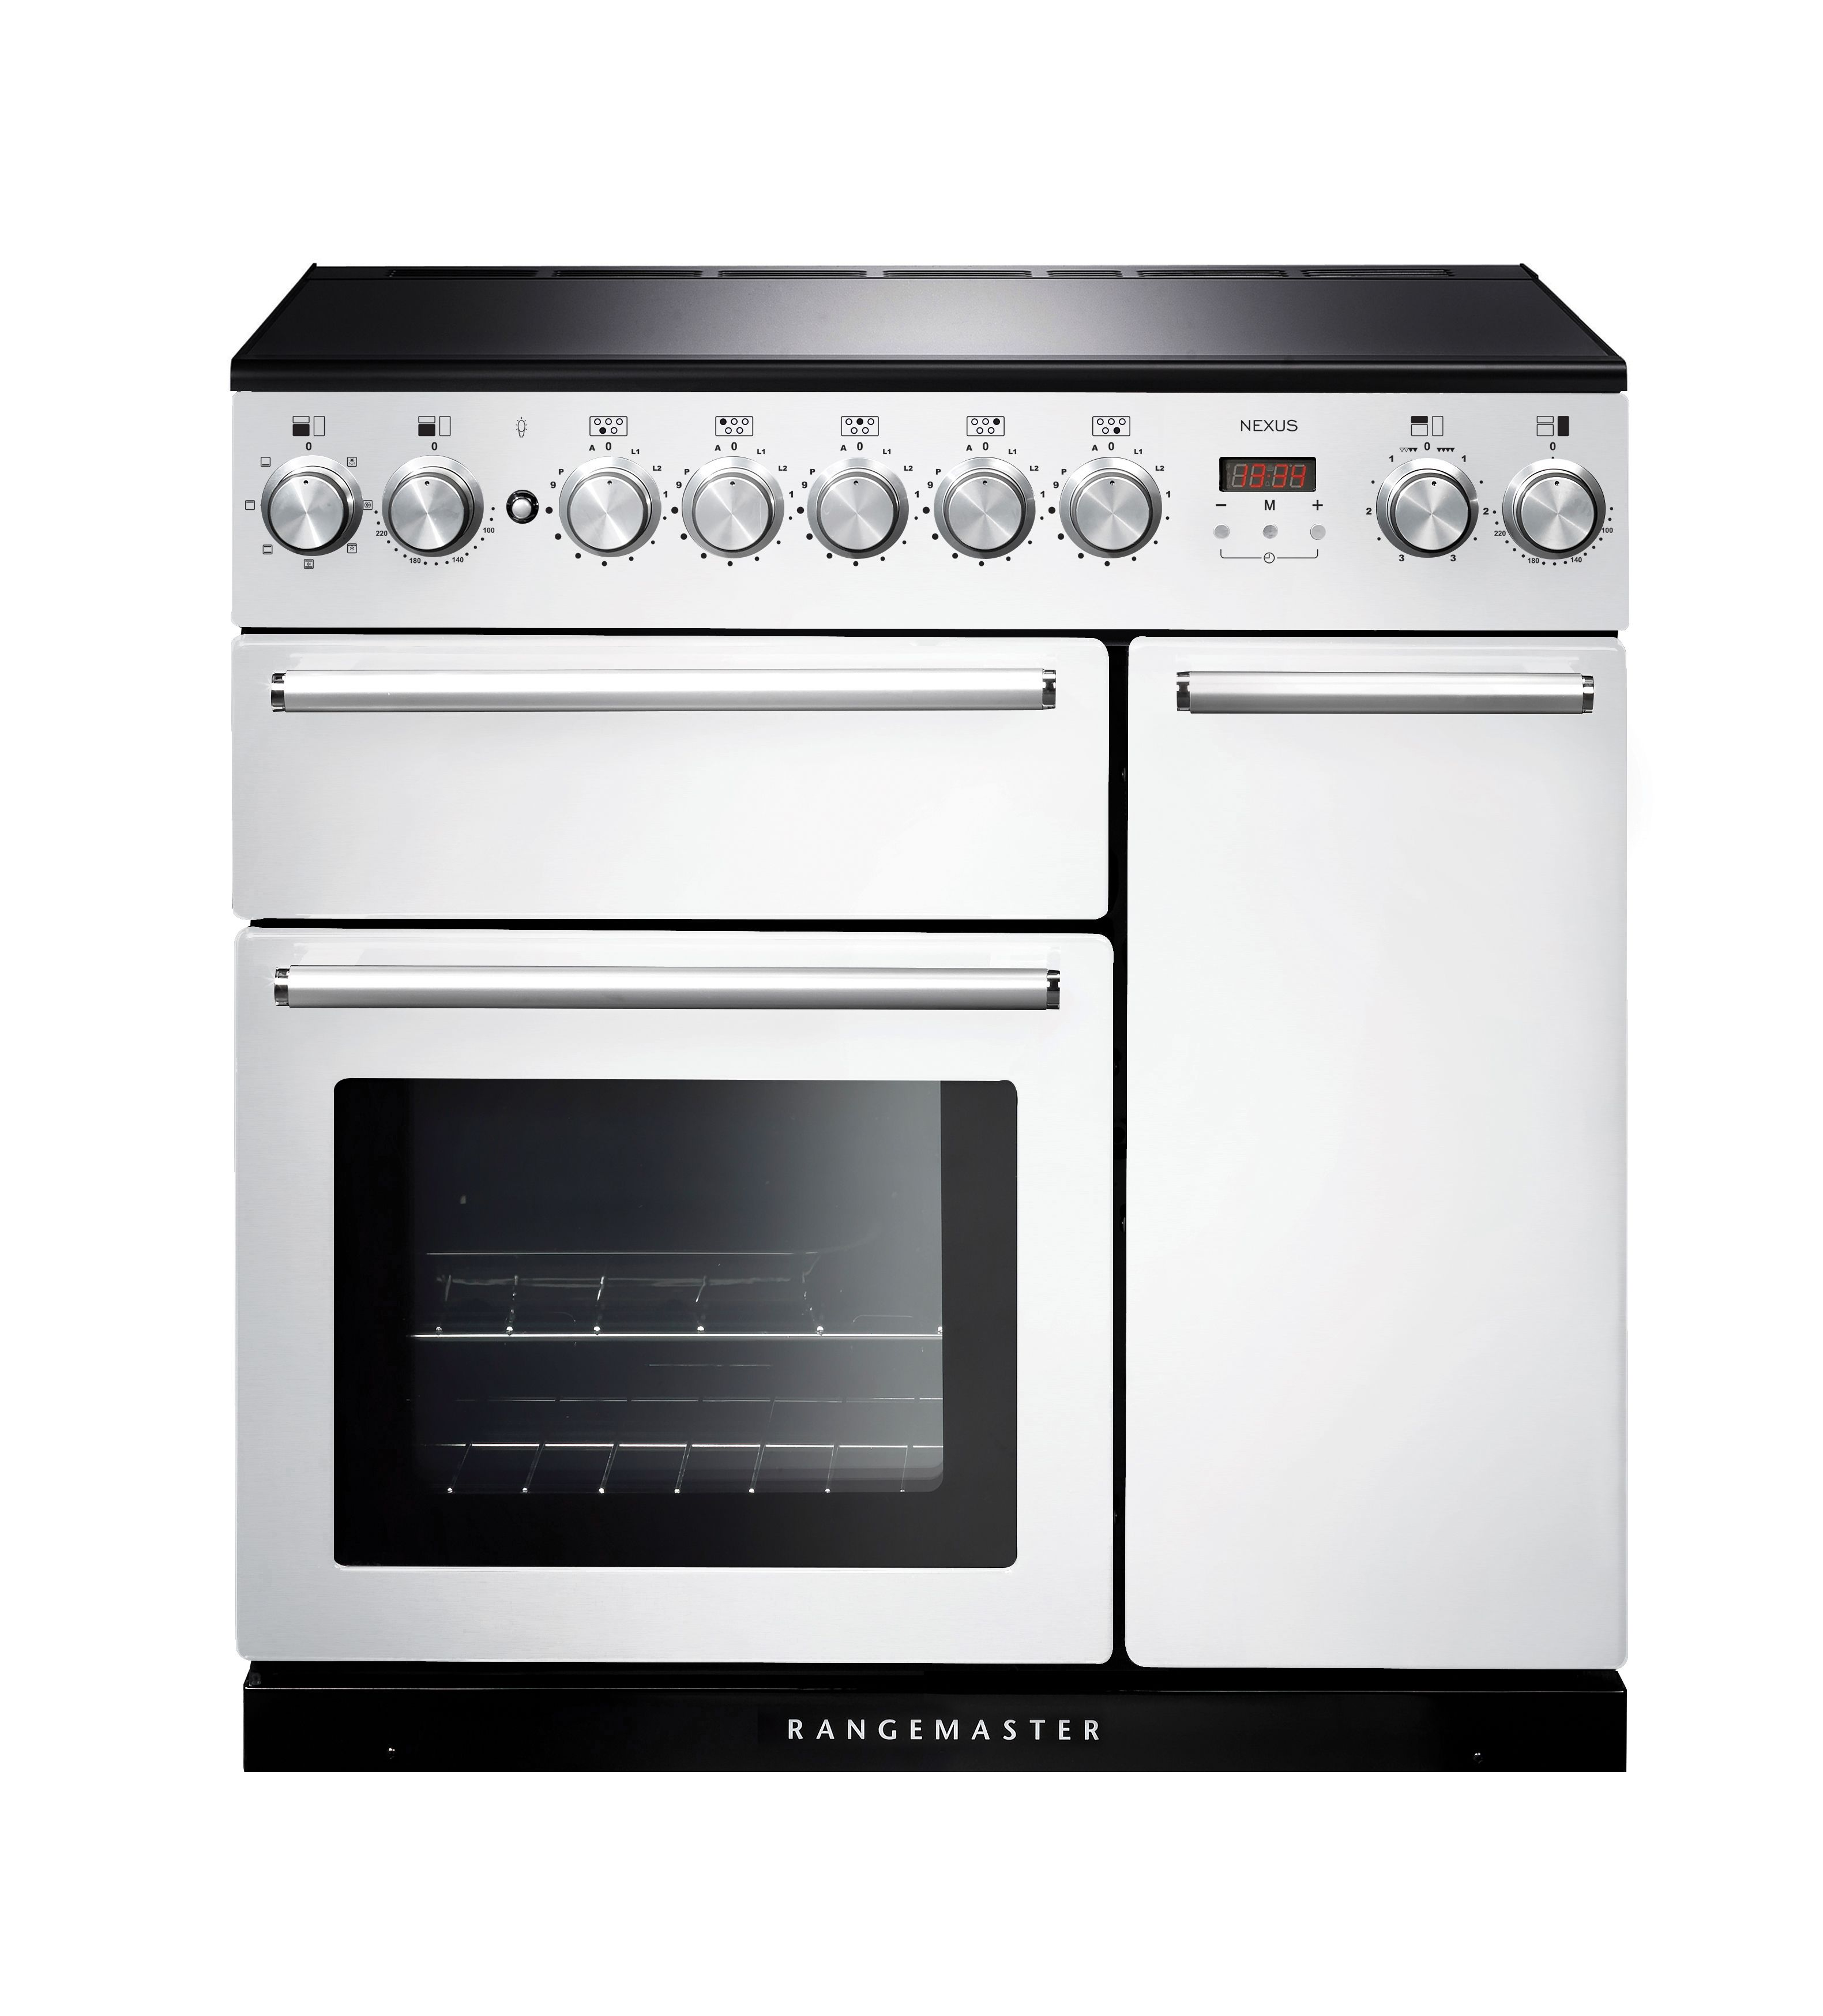 Our Nexus range cooker is now available with an induction hob ...